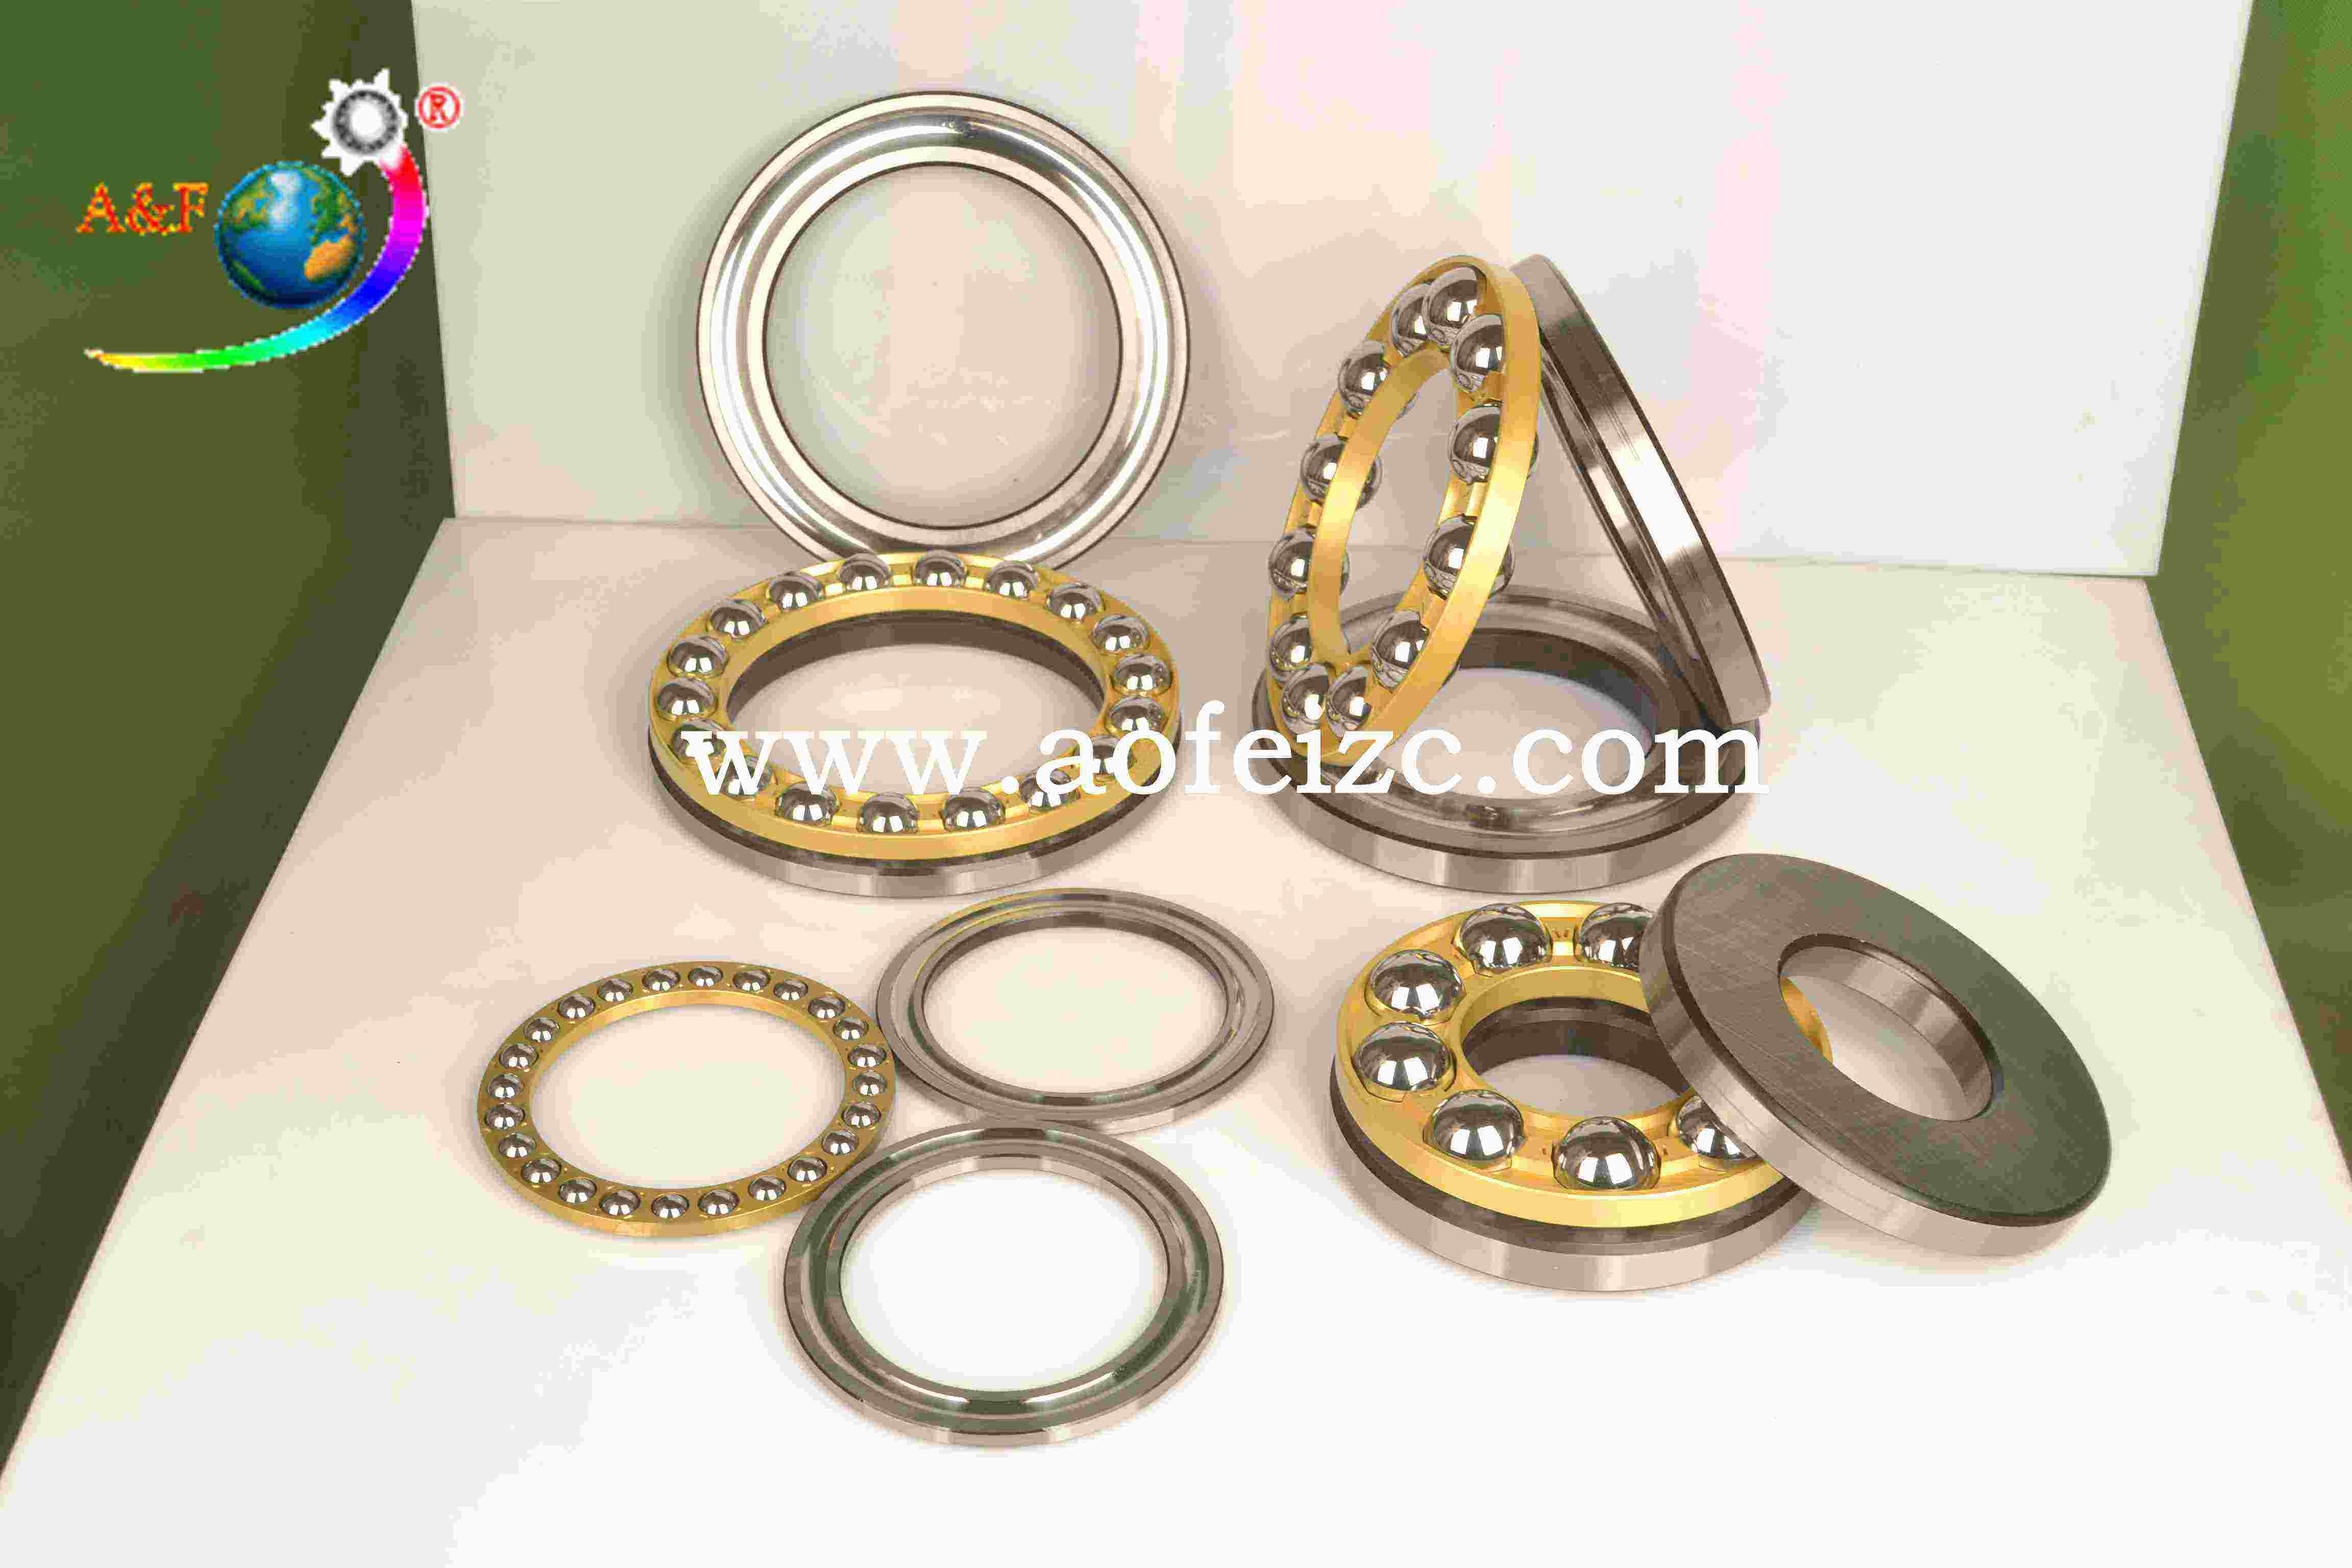 A&F factory Thrust Ball Bearing 51308 for Engineering Machinery